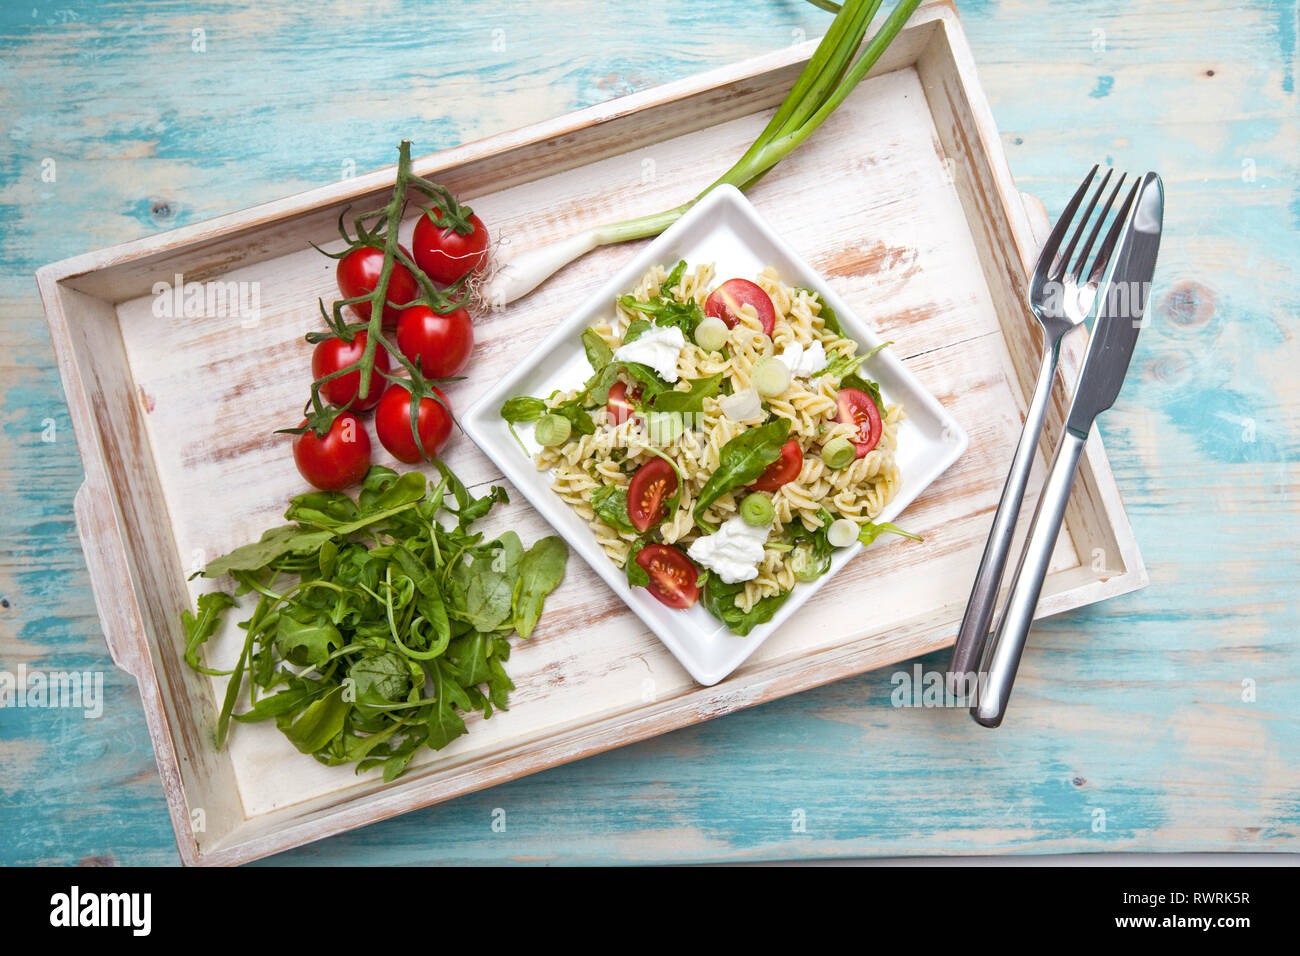 Pasta with mozarella cheese, arugula and vegetables on a wood background Stock Photo